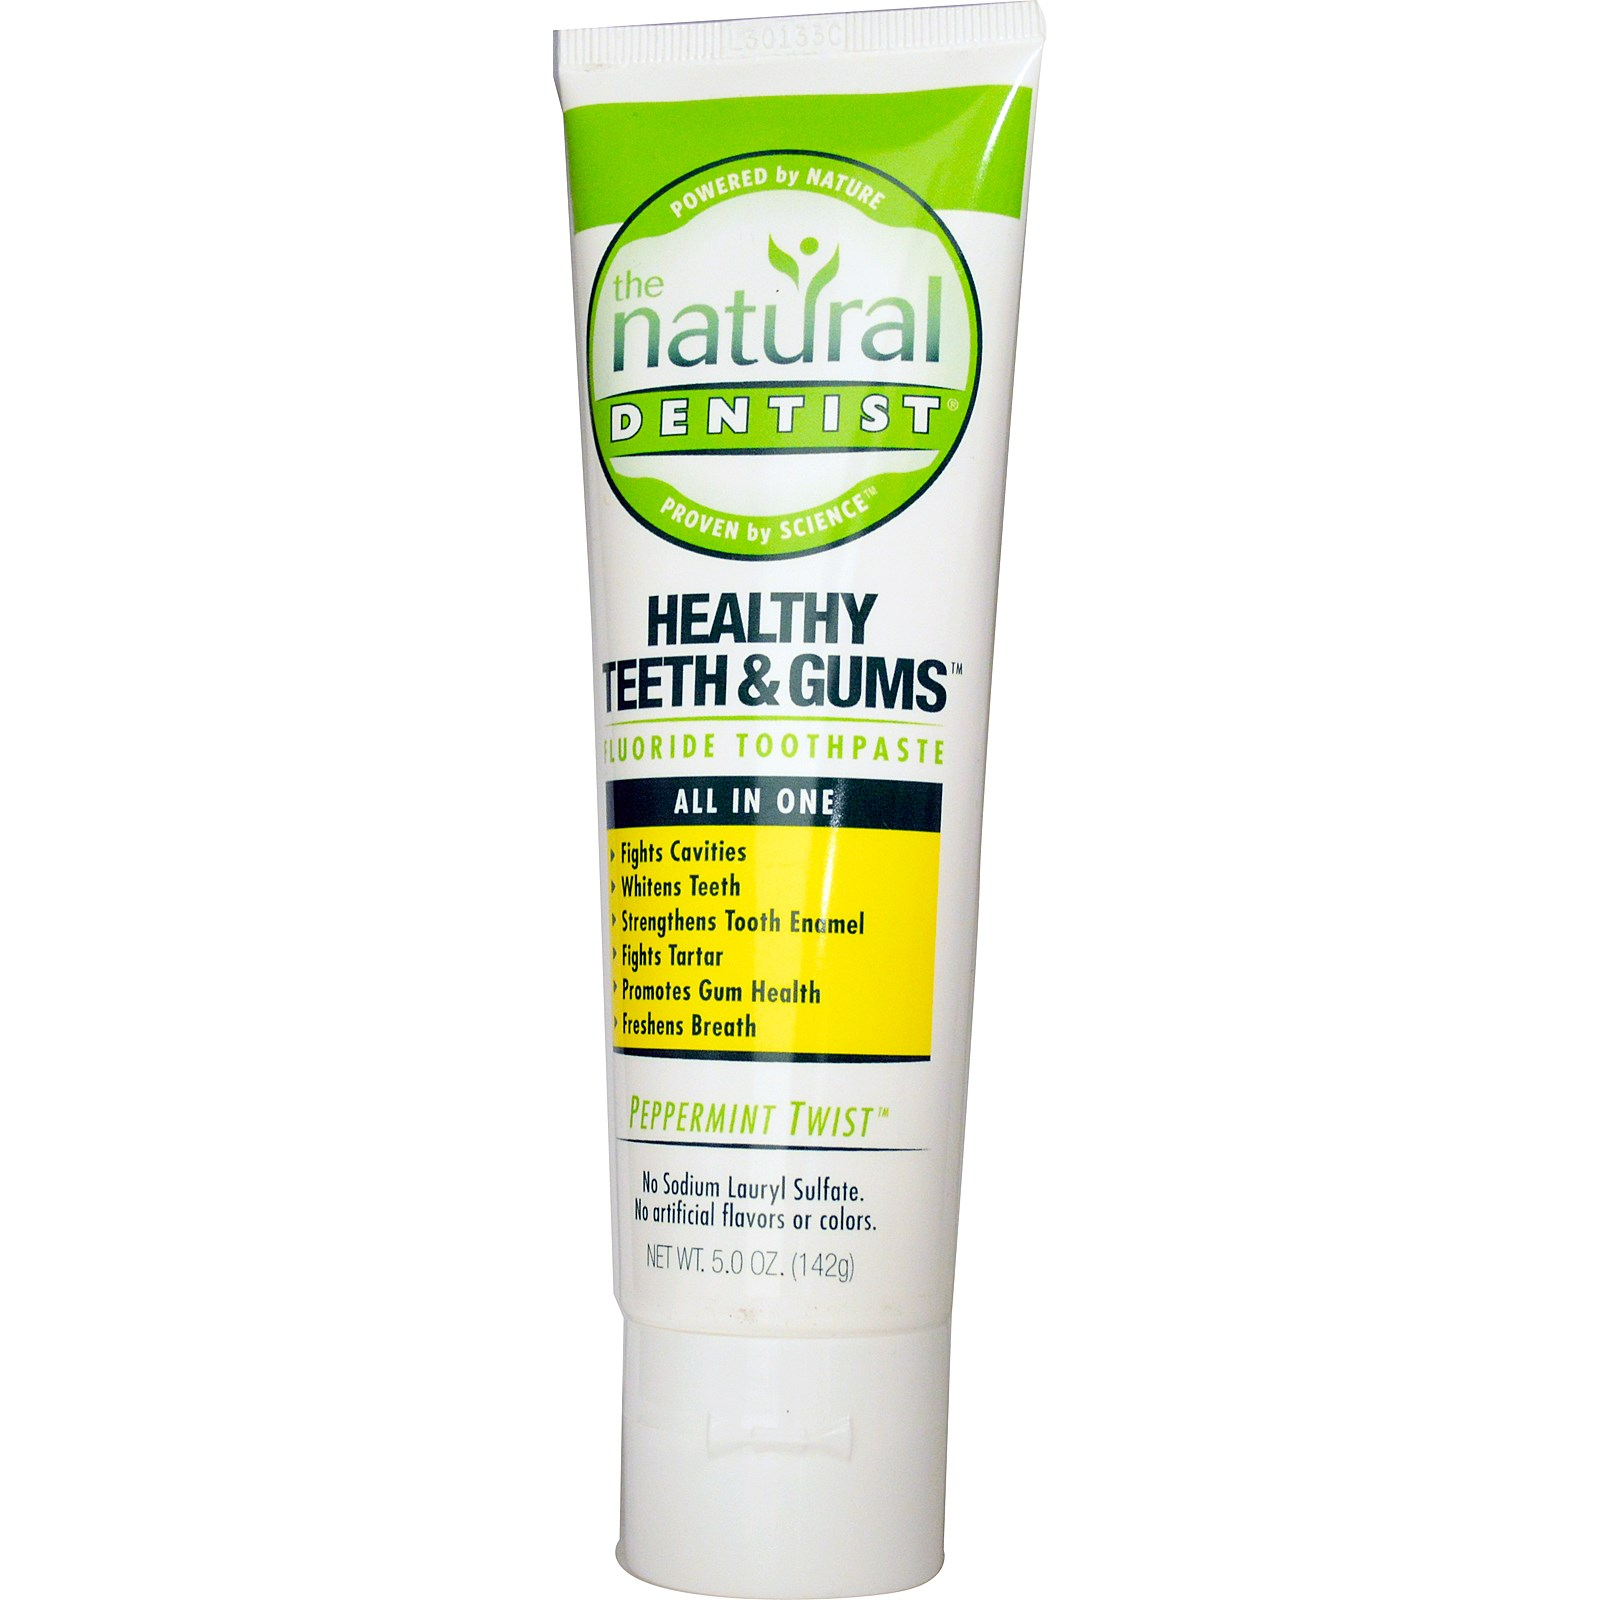 Natural Dentist Toothpaste Image